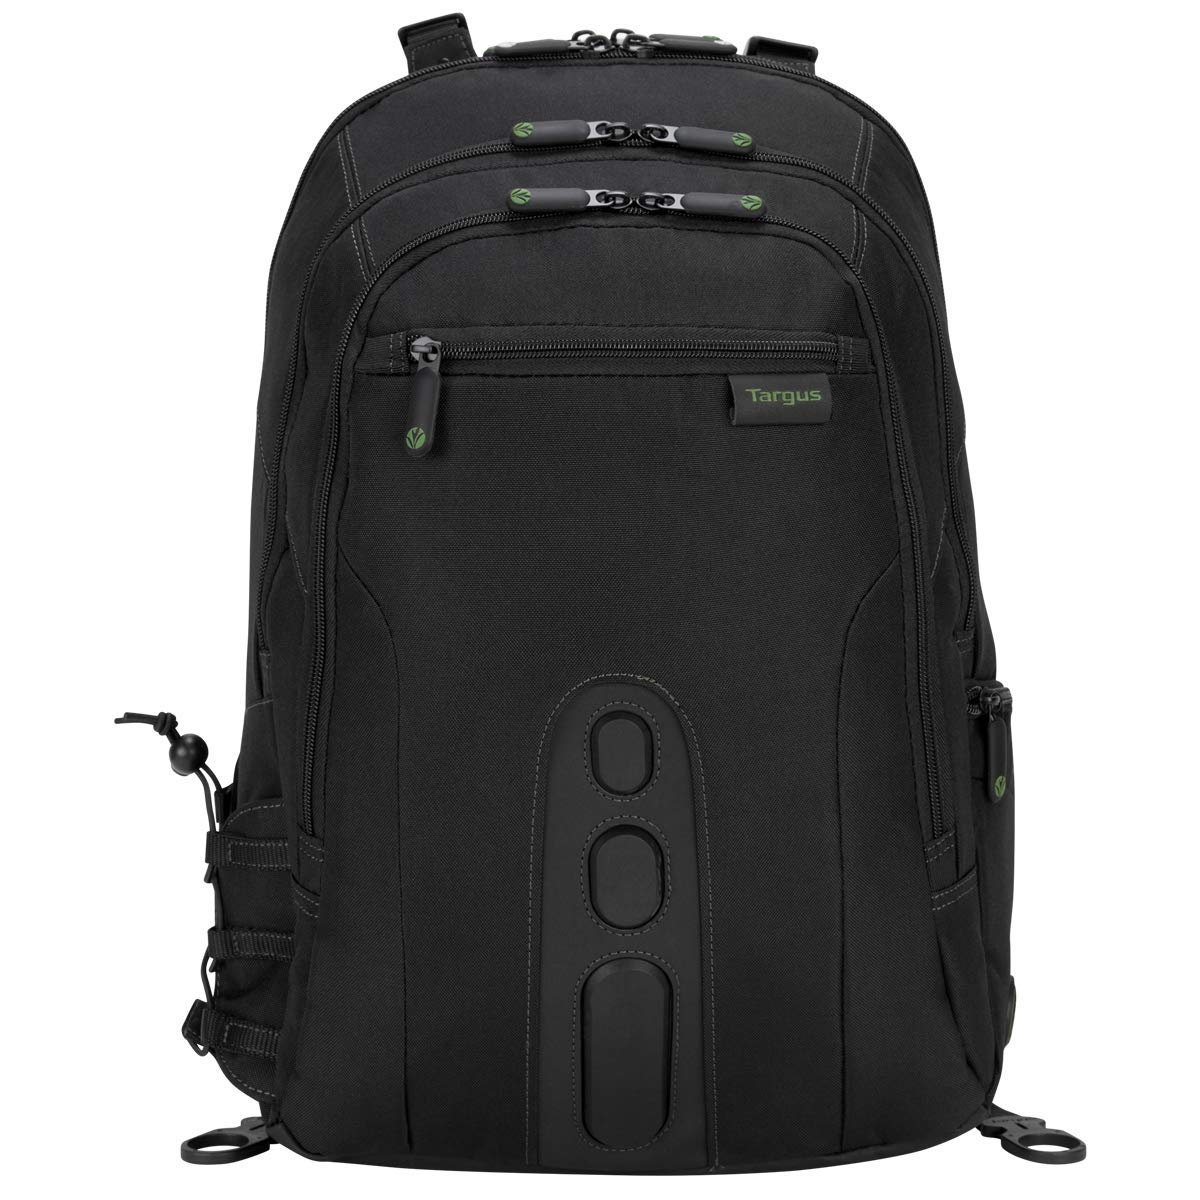 Targus Spruce EcoSmart Travel and Checkpoint-Friendly Laptop Backpack for 15.6-Inch Laptop, Black TBB013US